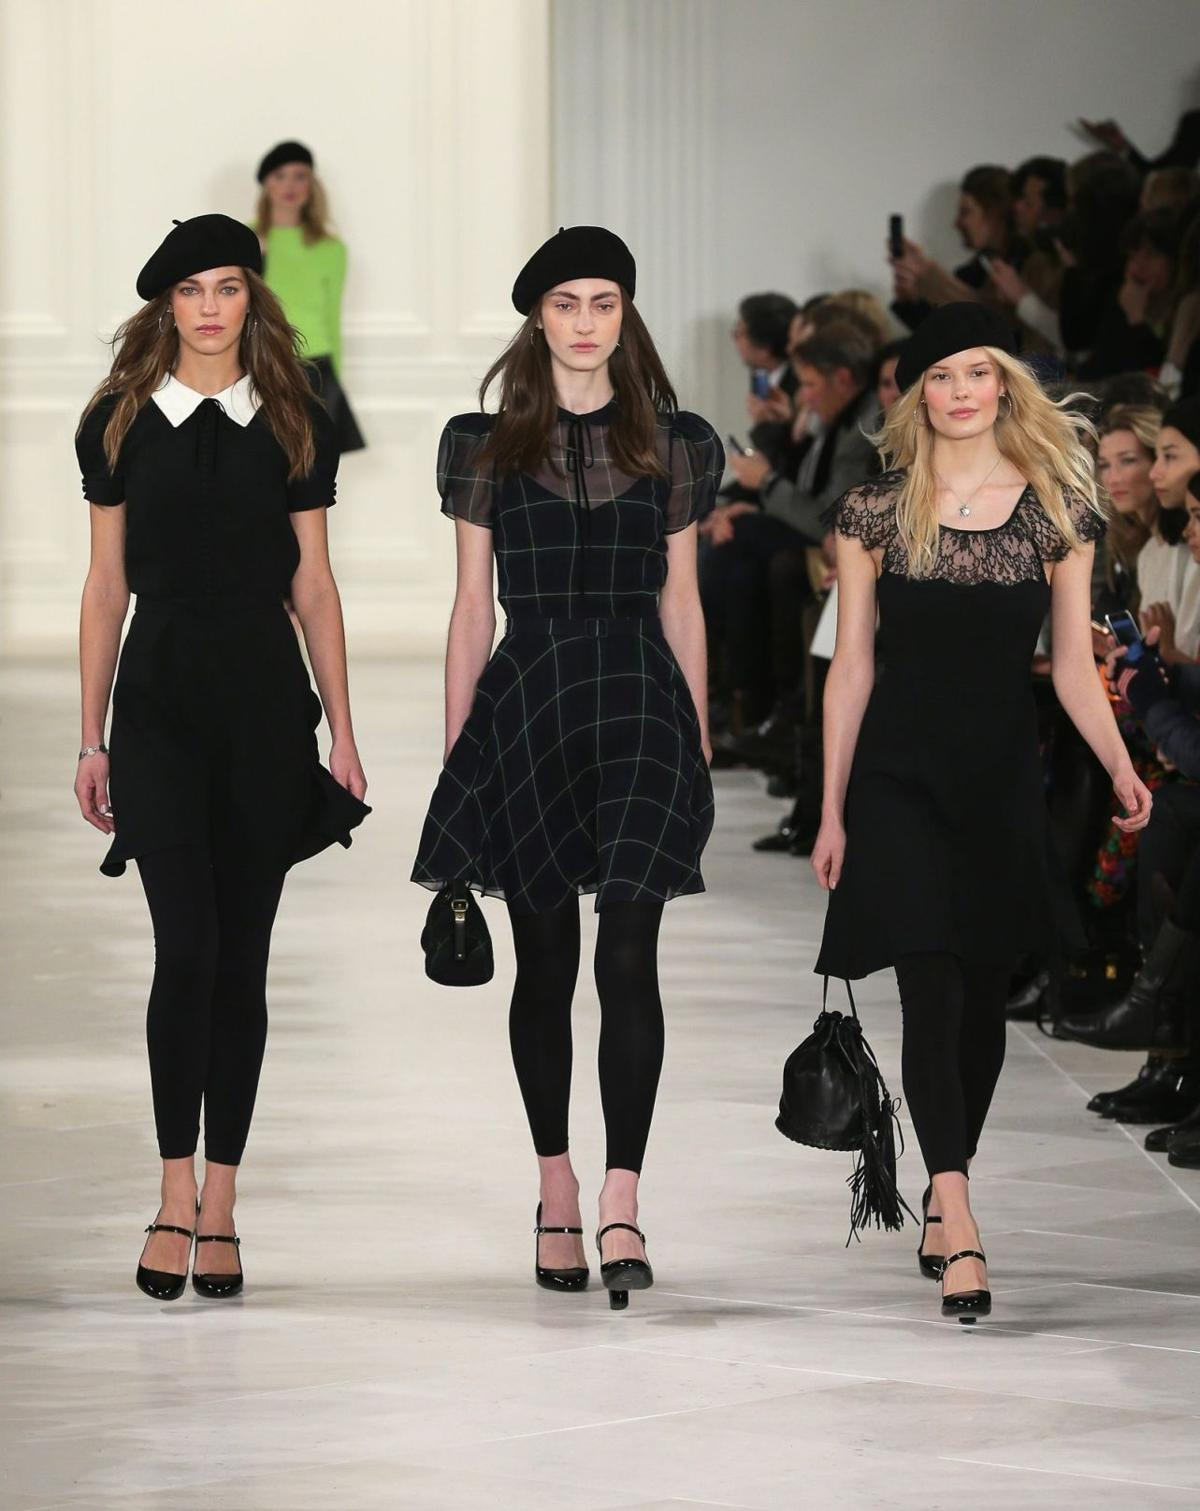 Fashion Forecast Frigid Weather Timely As Designers Unveil Their Fall Winter 2014 Collections Fashion Style Buffalonews Com